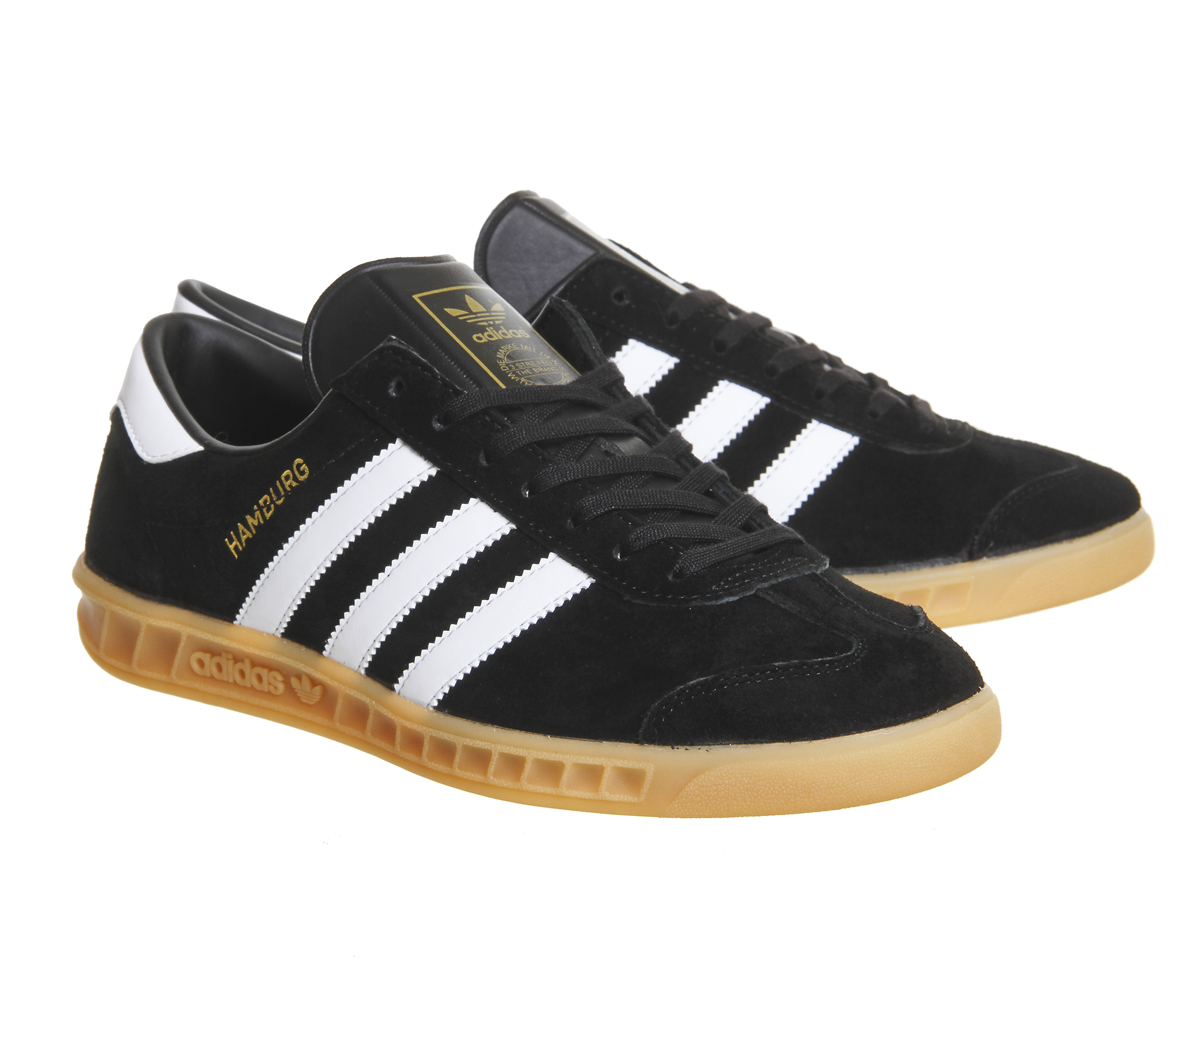 9e73b0bb52eb Adidas-Hamburg-BLACK-GUM-Trainers-Shoes thumbnail 7